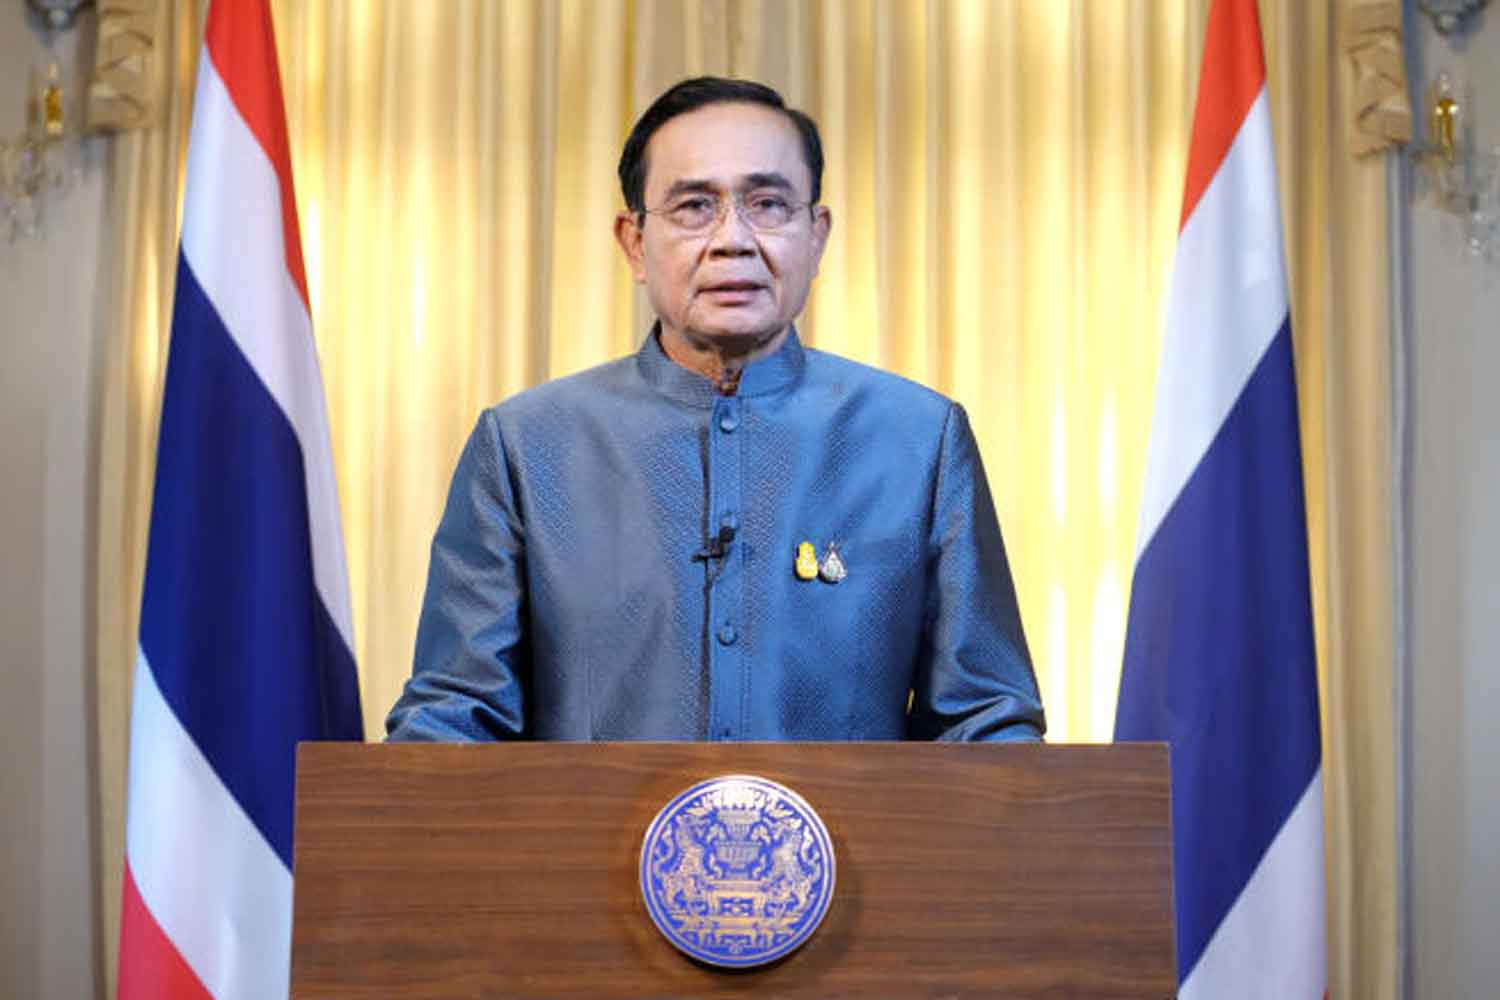 Prime Minister Prayut Chan-o-cha addresses the nation about the recent outbreak of Covid-19 in the country. In the televised address, he hinted at travel curbs and a potential ban on New Year celebrations.(Government House photo)